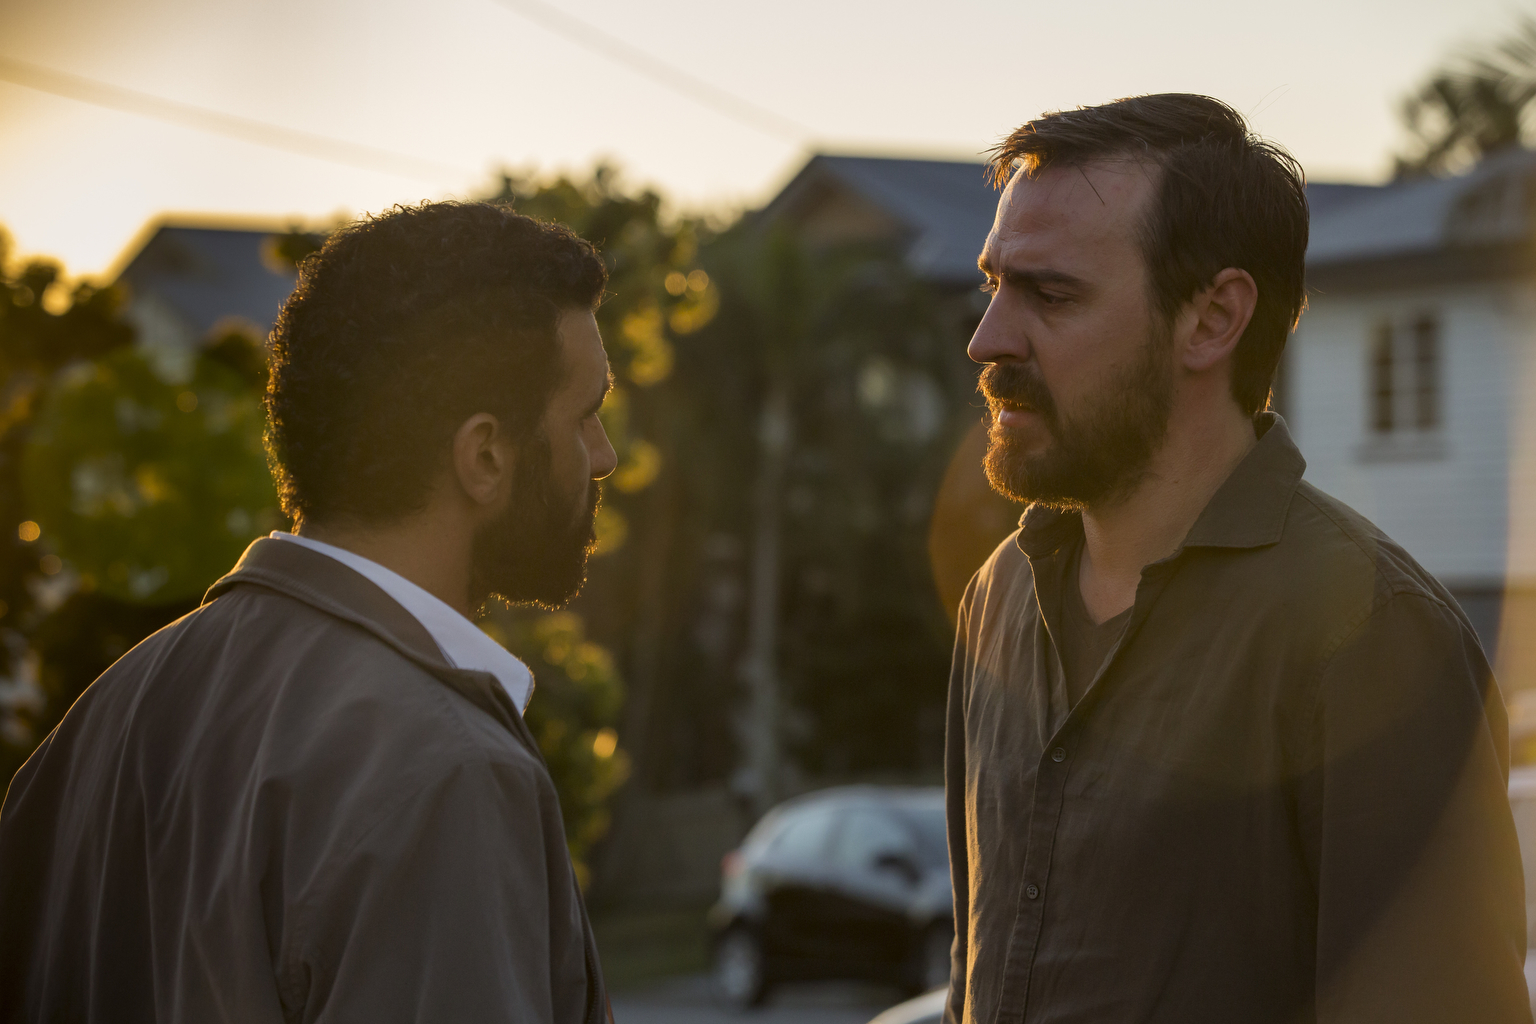 SAFE HARBOUR - Episode 4 - The truth leads to a life in danger, as Ismail Ð blinded by grief Ð tries to get retribution, leading to a final confrontation and the possibility of new beginnings. Ismail Al-Bayati (Hazem Shammas) and Ryan Gallagher (Ewen Leslie) shown. (Photo by: Vince Valitutti/Hulu)